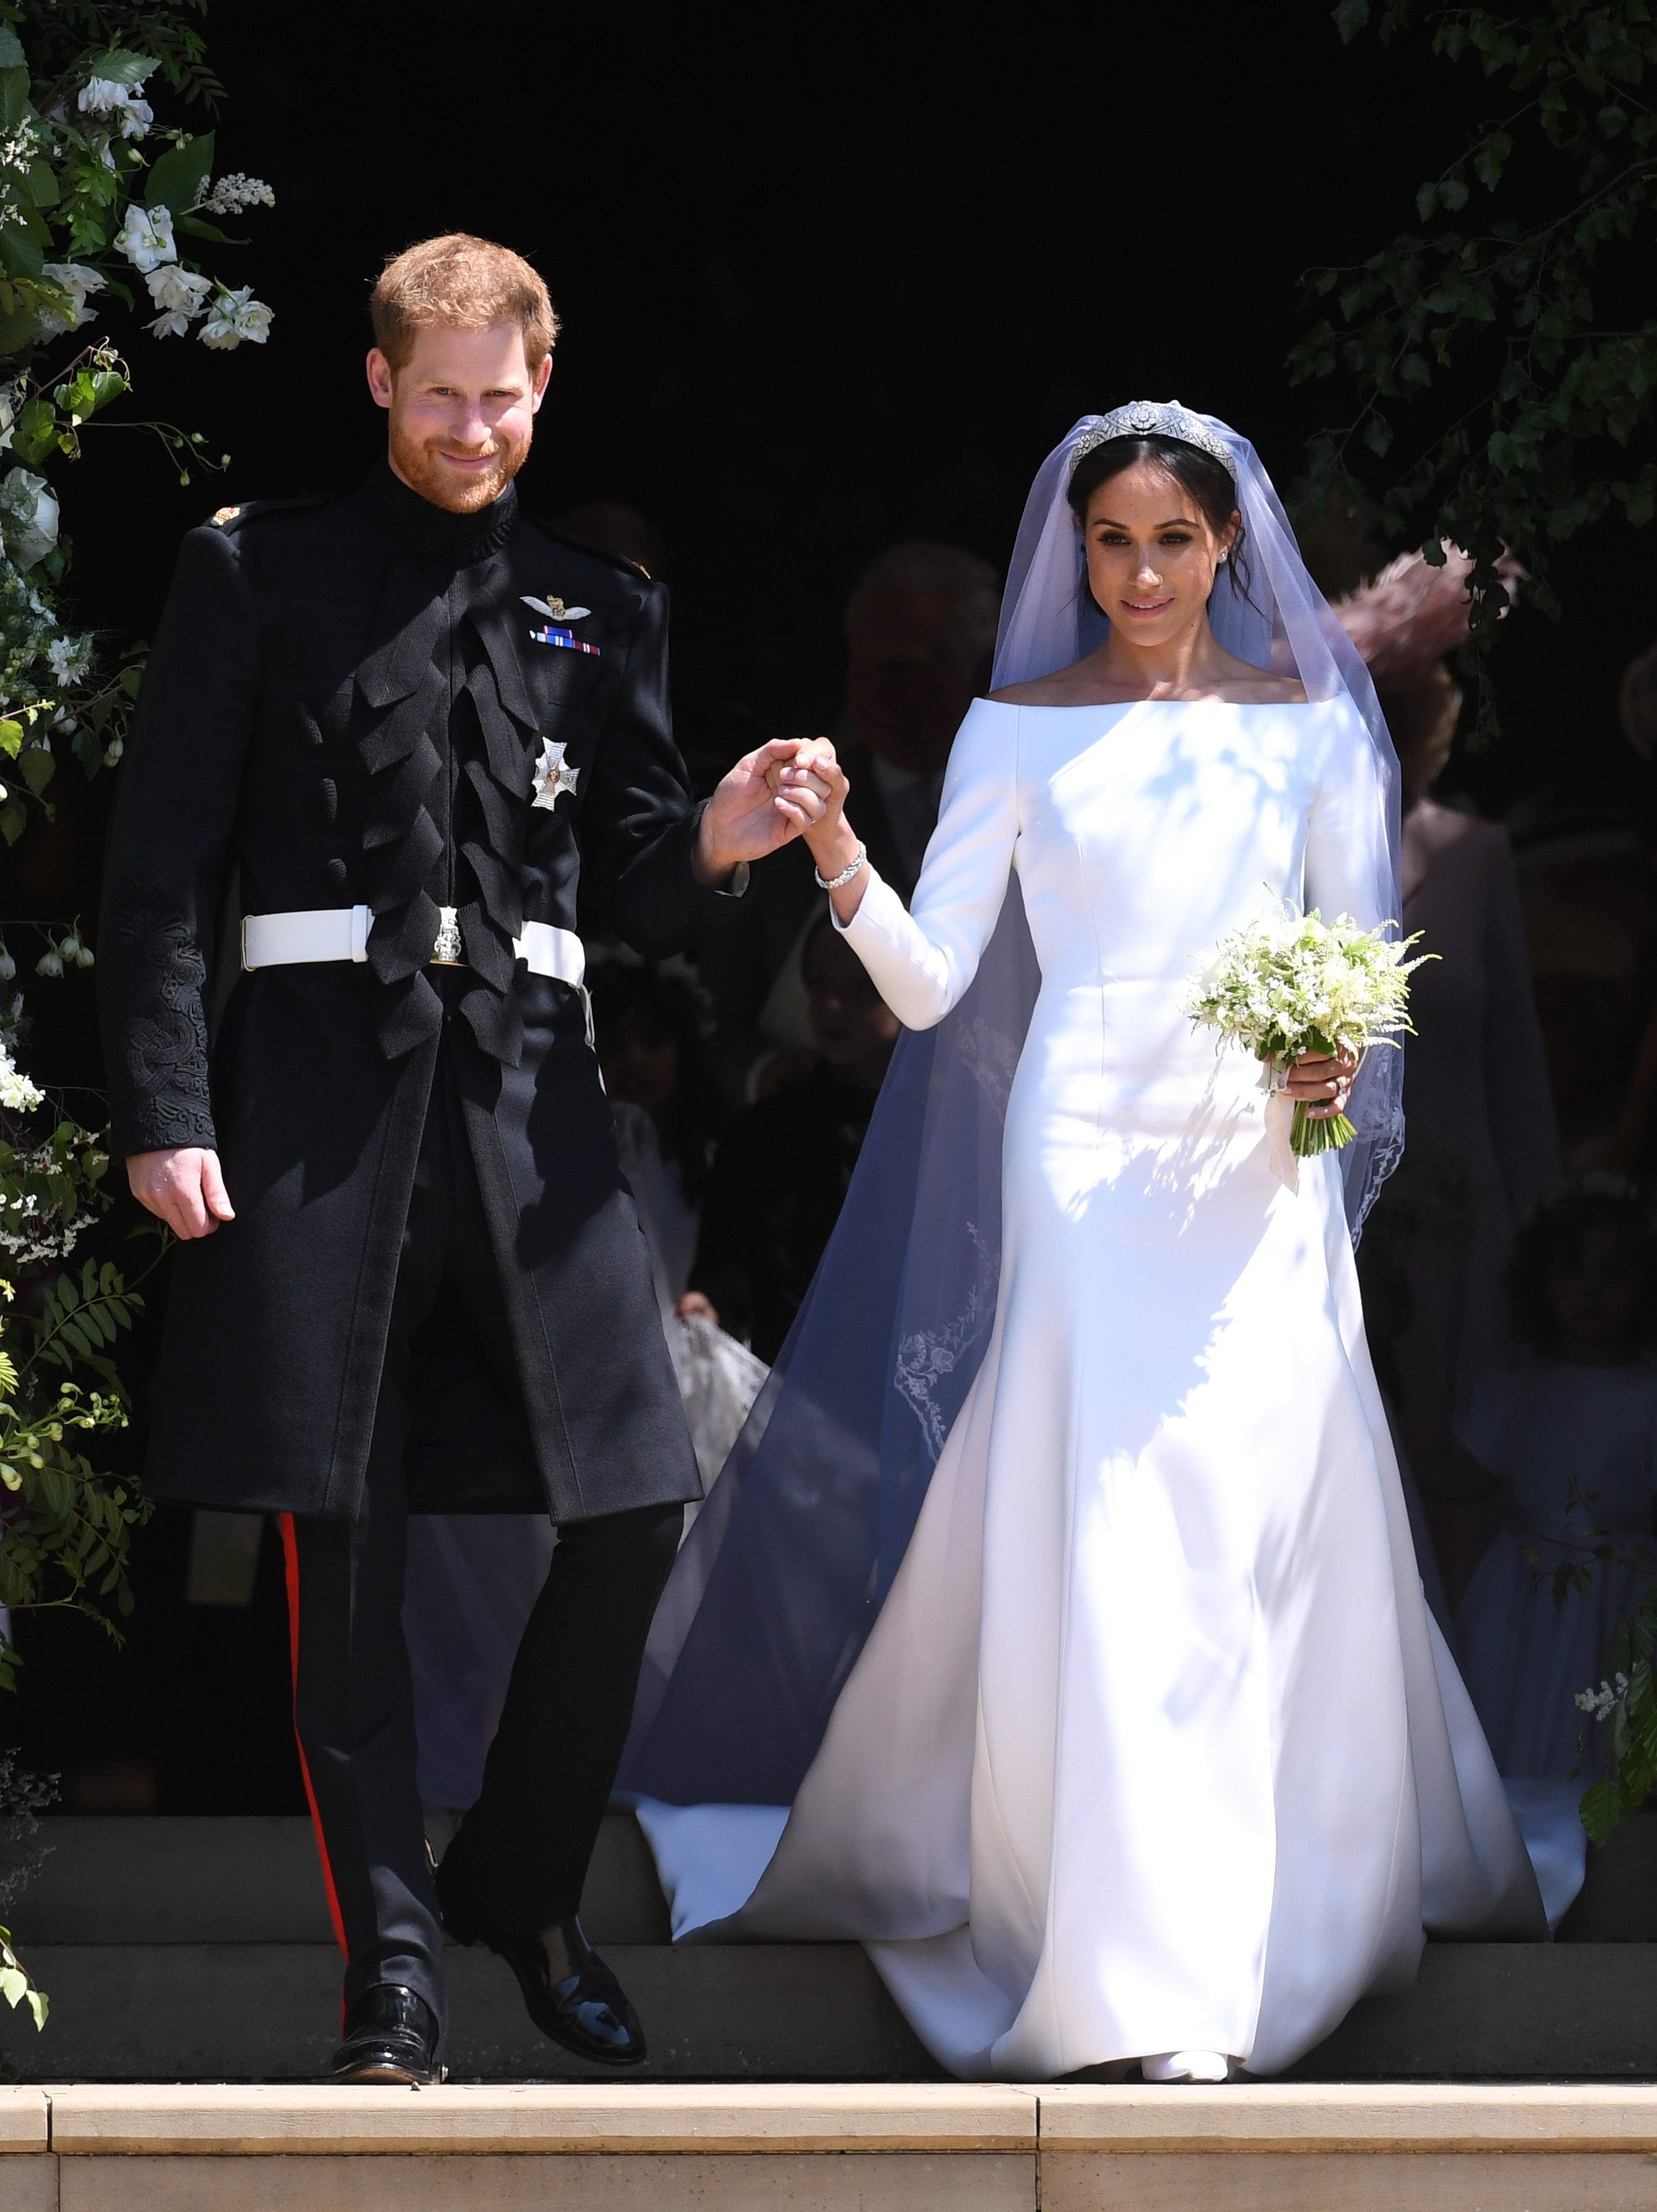 12 Royal Wedding Dress Traditions All Brides Must Follow - Fame10